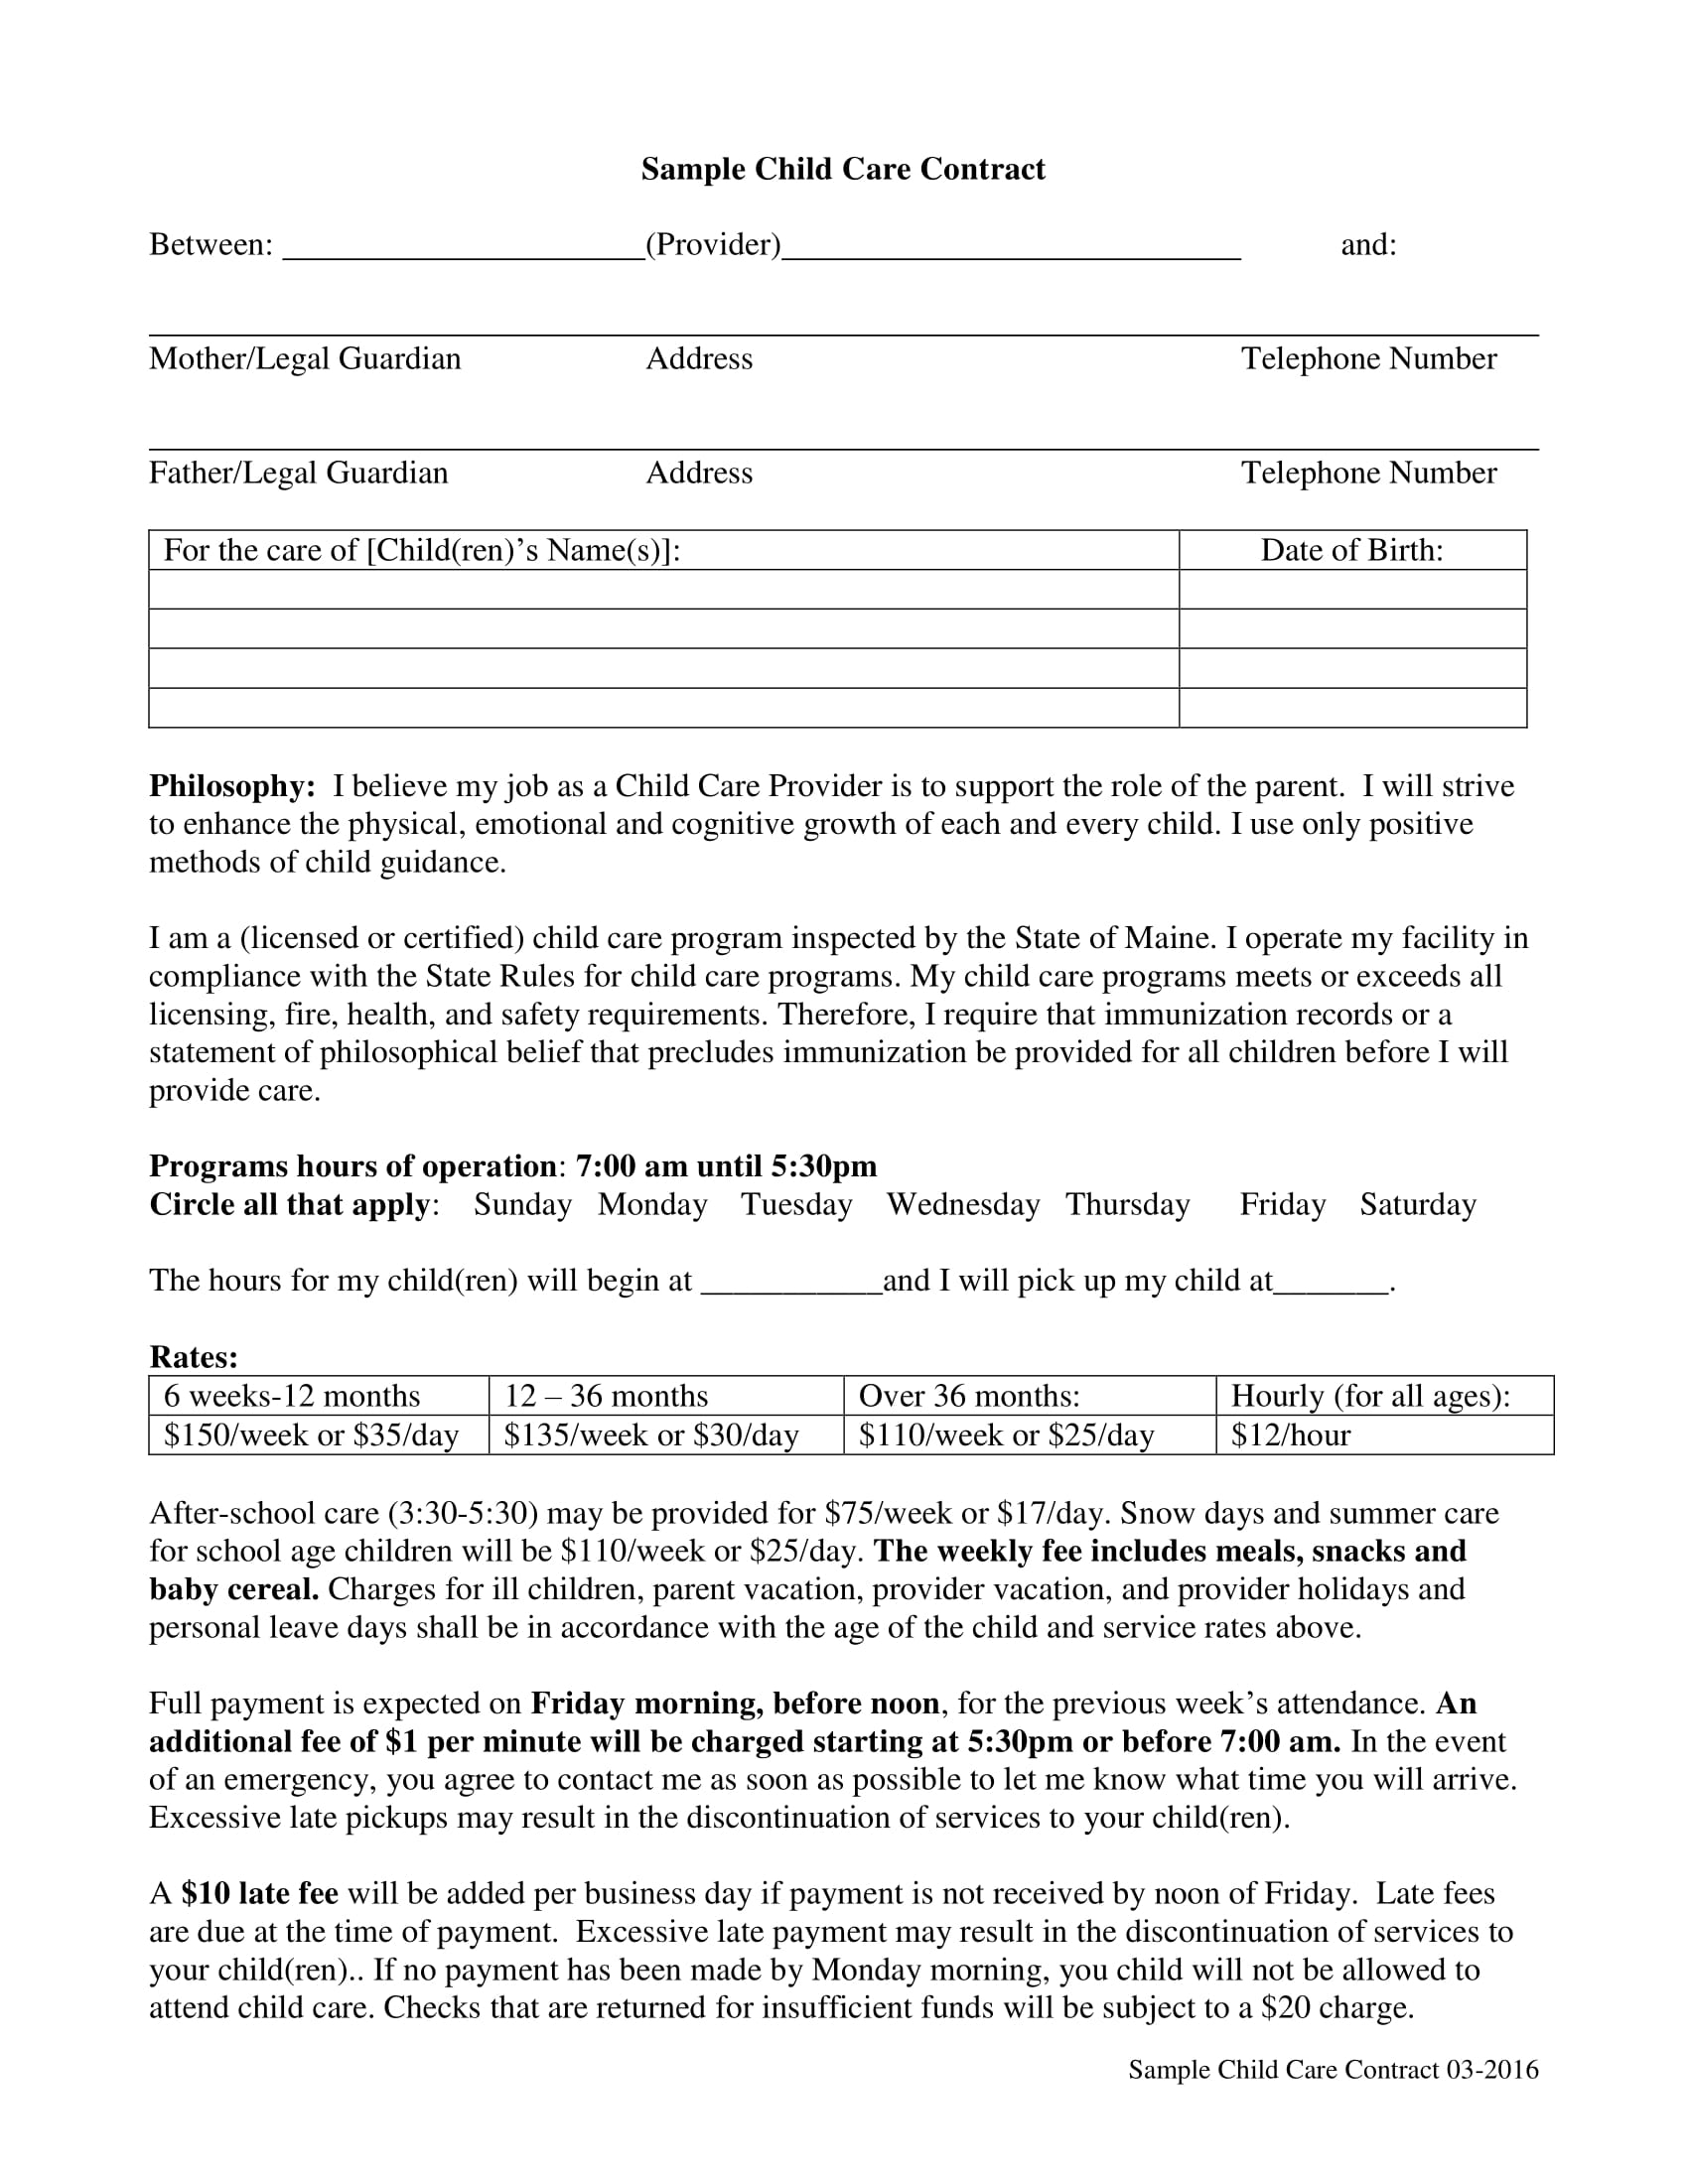 7 child care contract examples pdf sample child care contract example maxwellsz